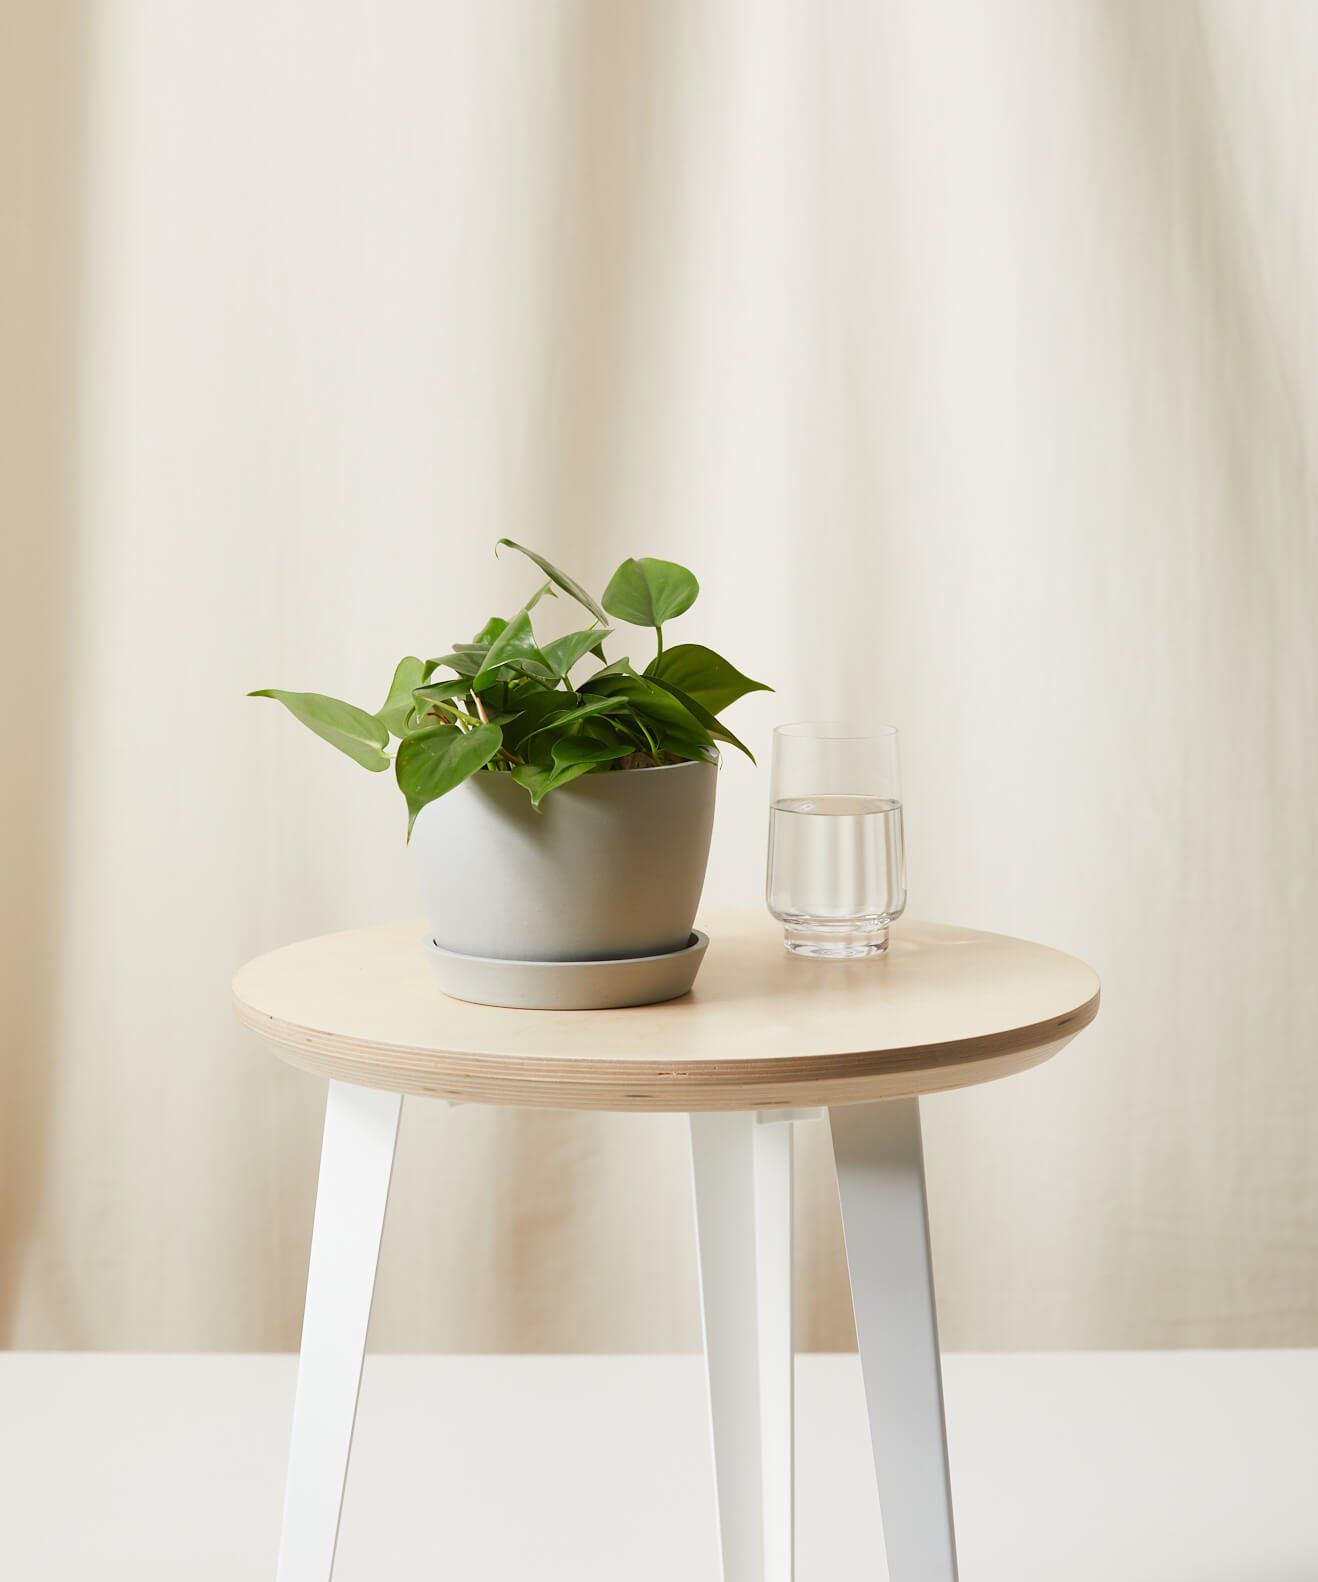 Heartleaf philodendron in a white pot on a table next to a glass of water